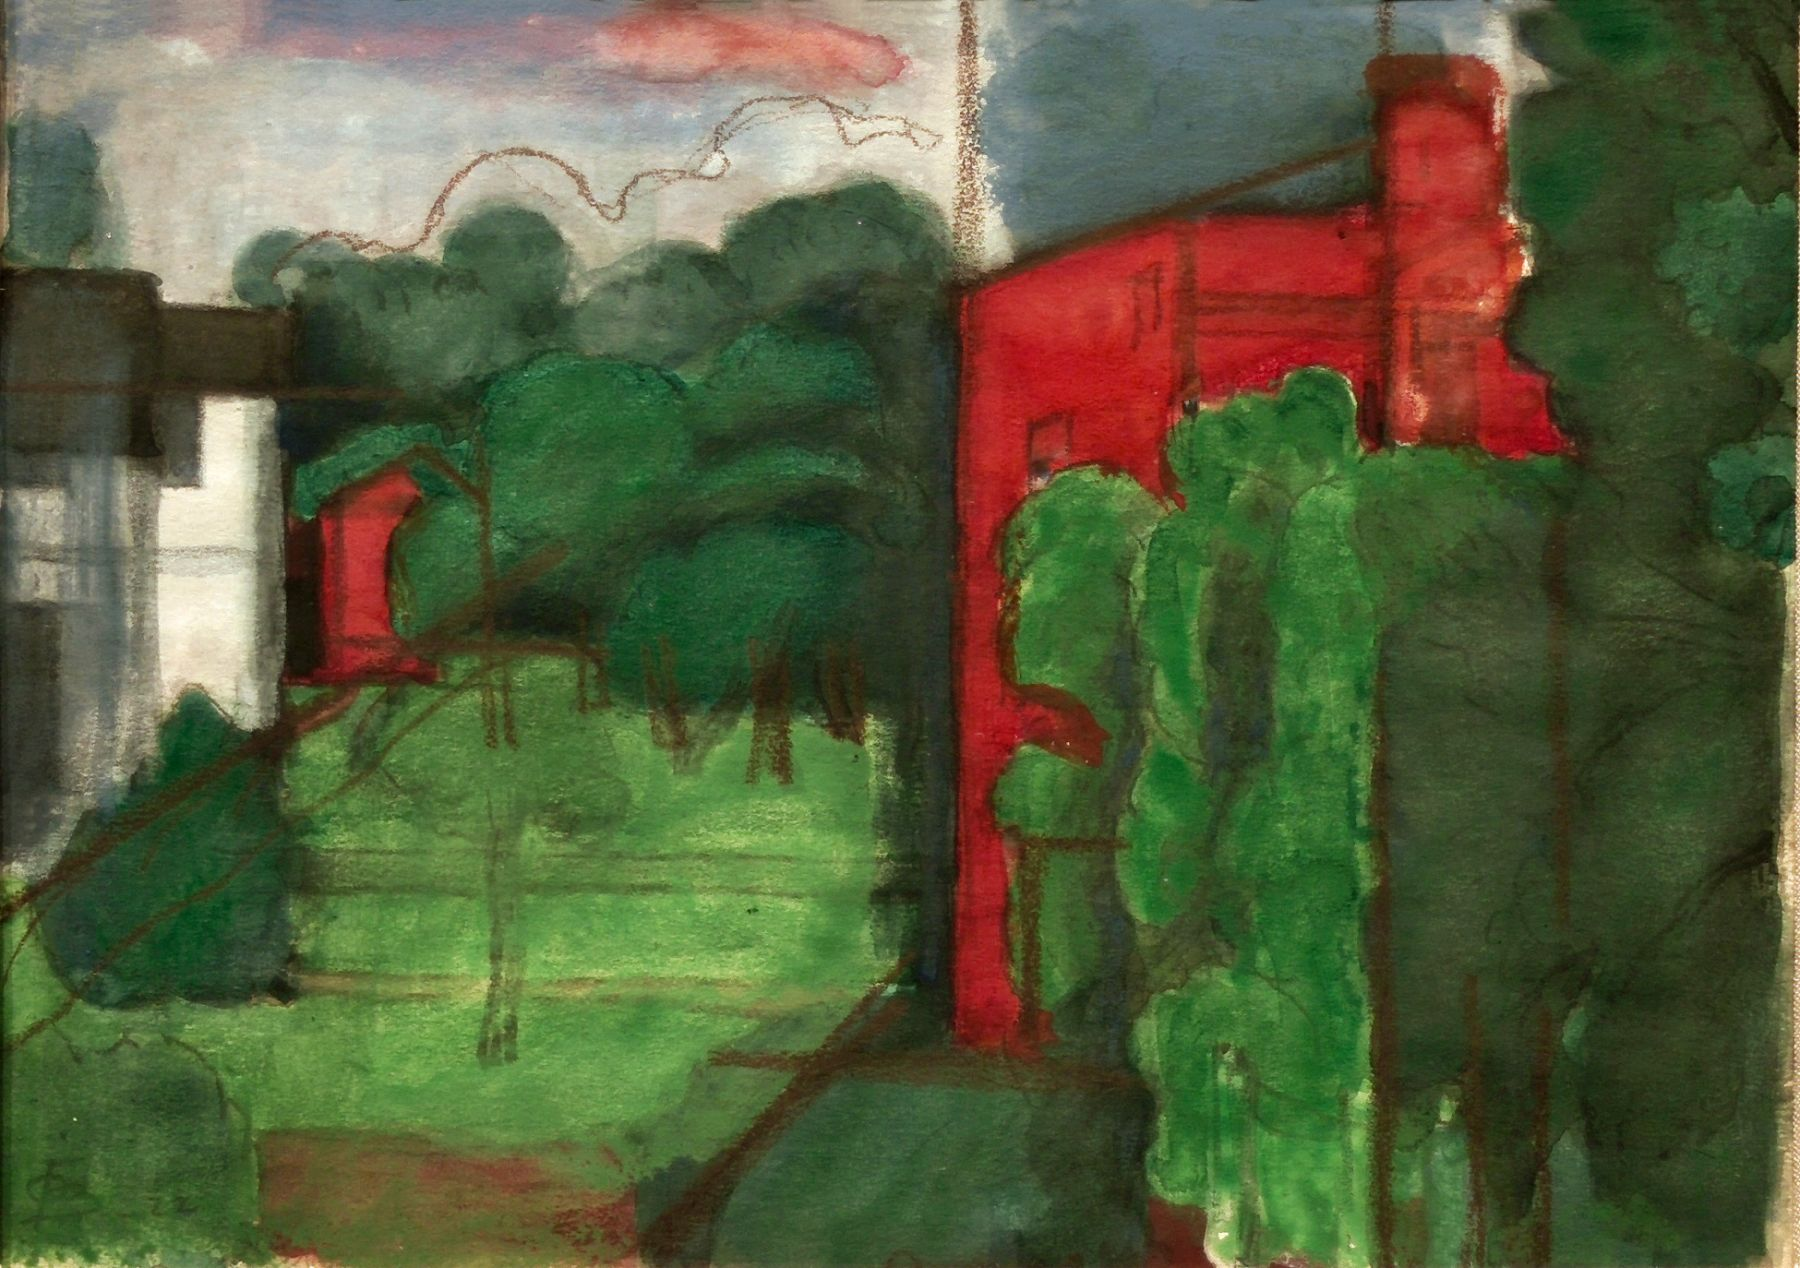 Oscar Bluemner, Irvington-Union, 1922, watercolor and gouache over charcoal on paper, 4 7/8 x 6 5/8 inches